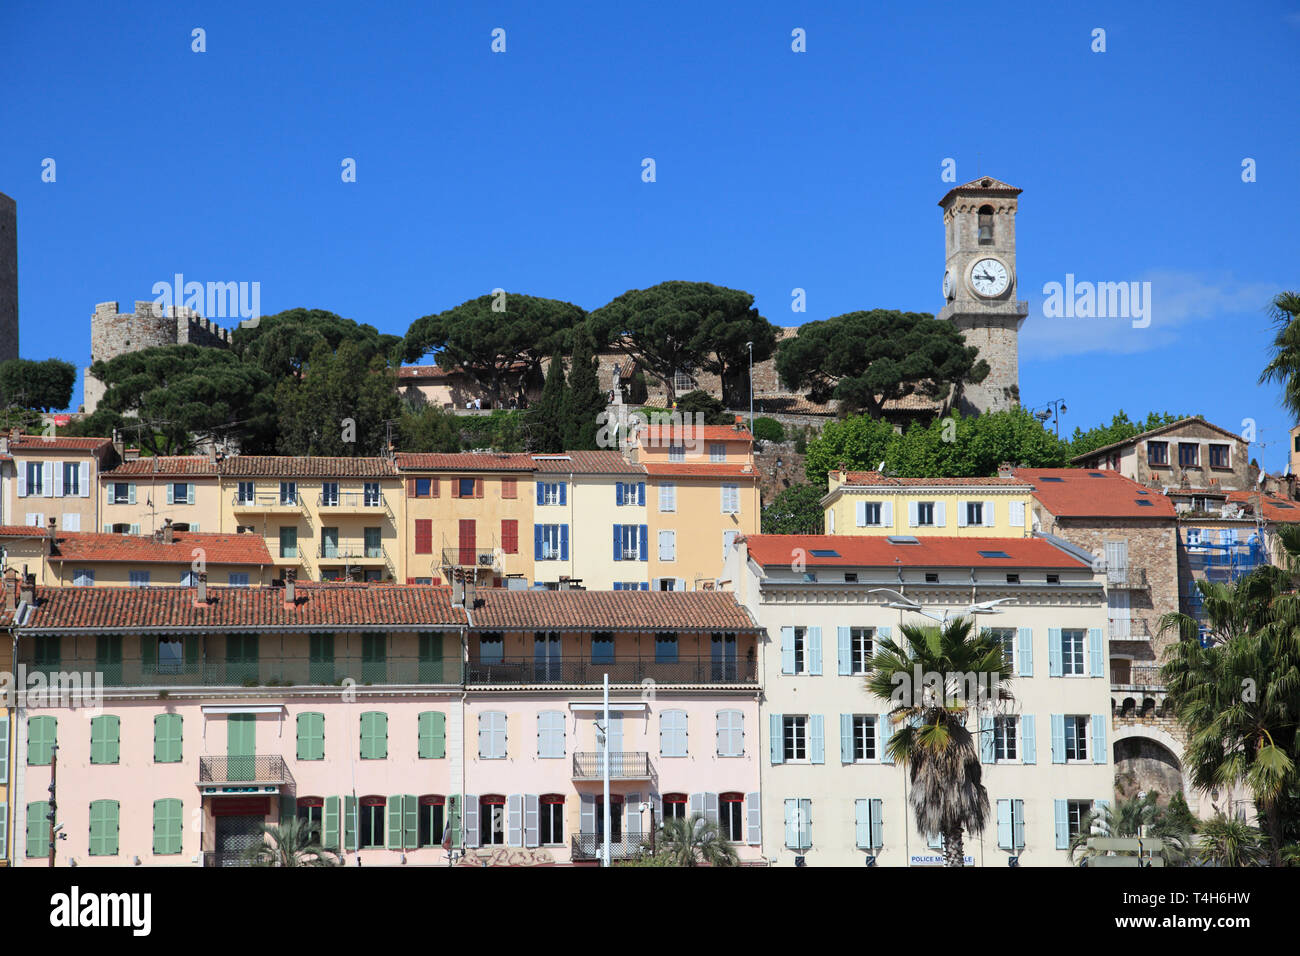 Le Suquet, Old Town, Cannes, Alpes Maritimes, Cote d'Azur, Provence, French Riviera, France, Europe - Stock Image